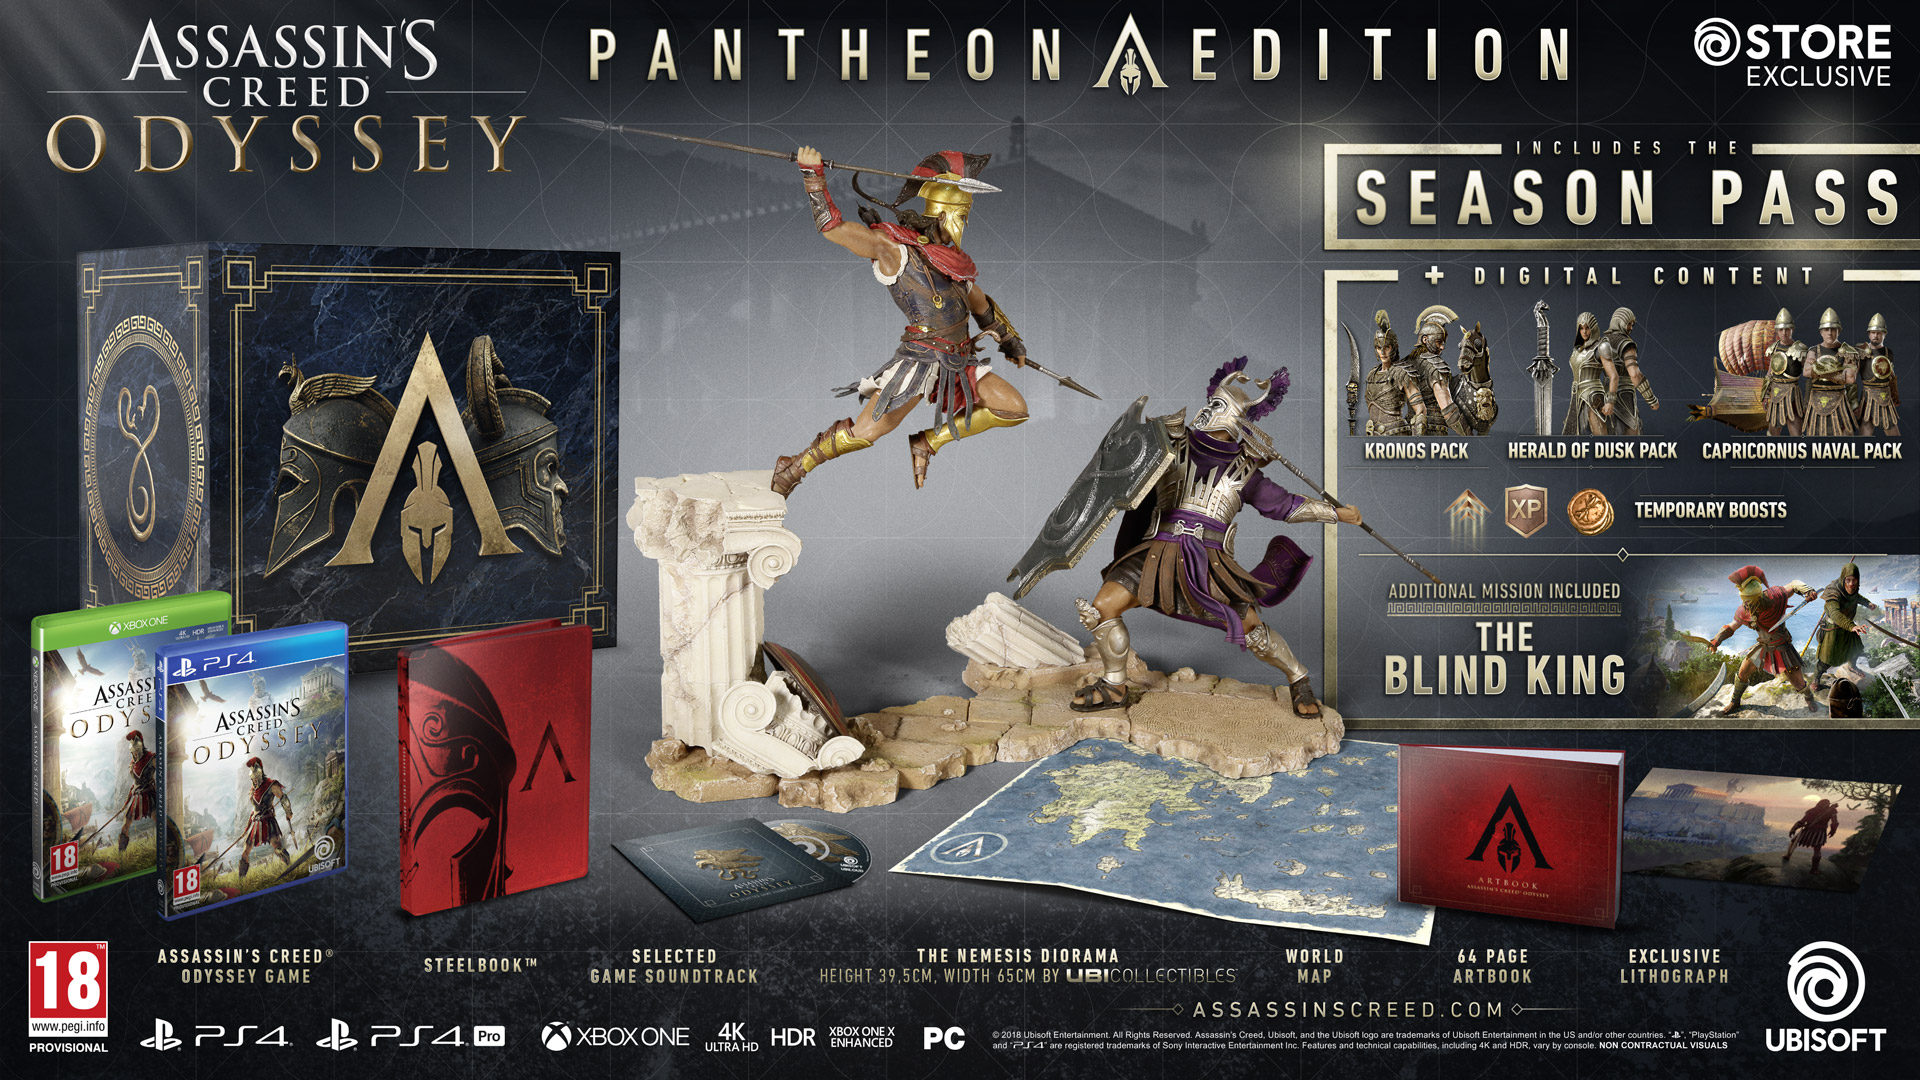 Assassin's Creed Odyssey editions: what each edition